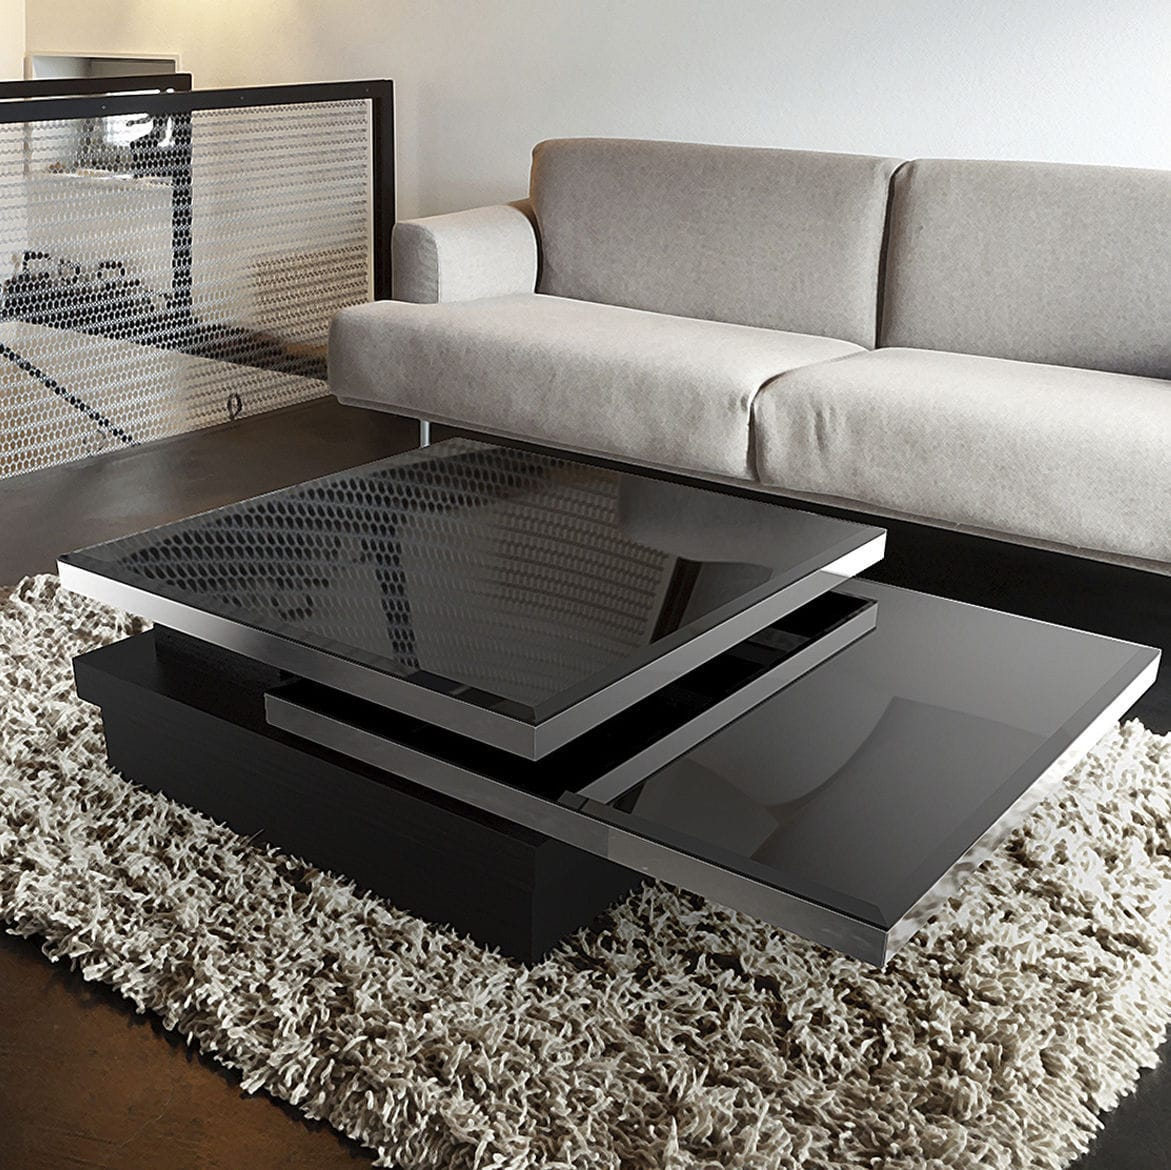 contemporary coffee table  lacquered mdf  tempered glass  - contemporary coffee table  lacquered mdf  tempered glass  stainlesssteel  sigma